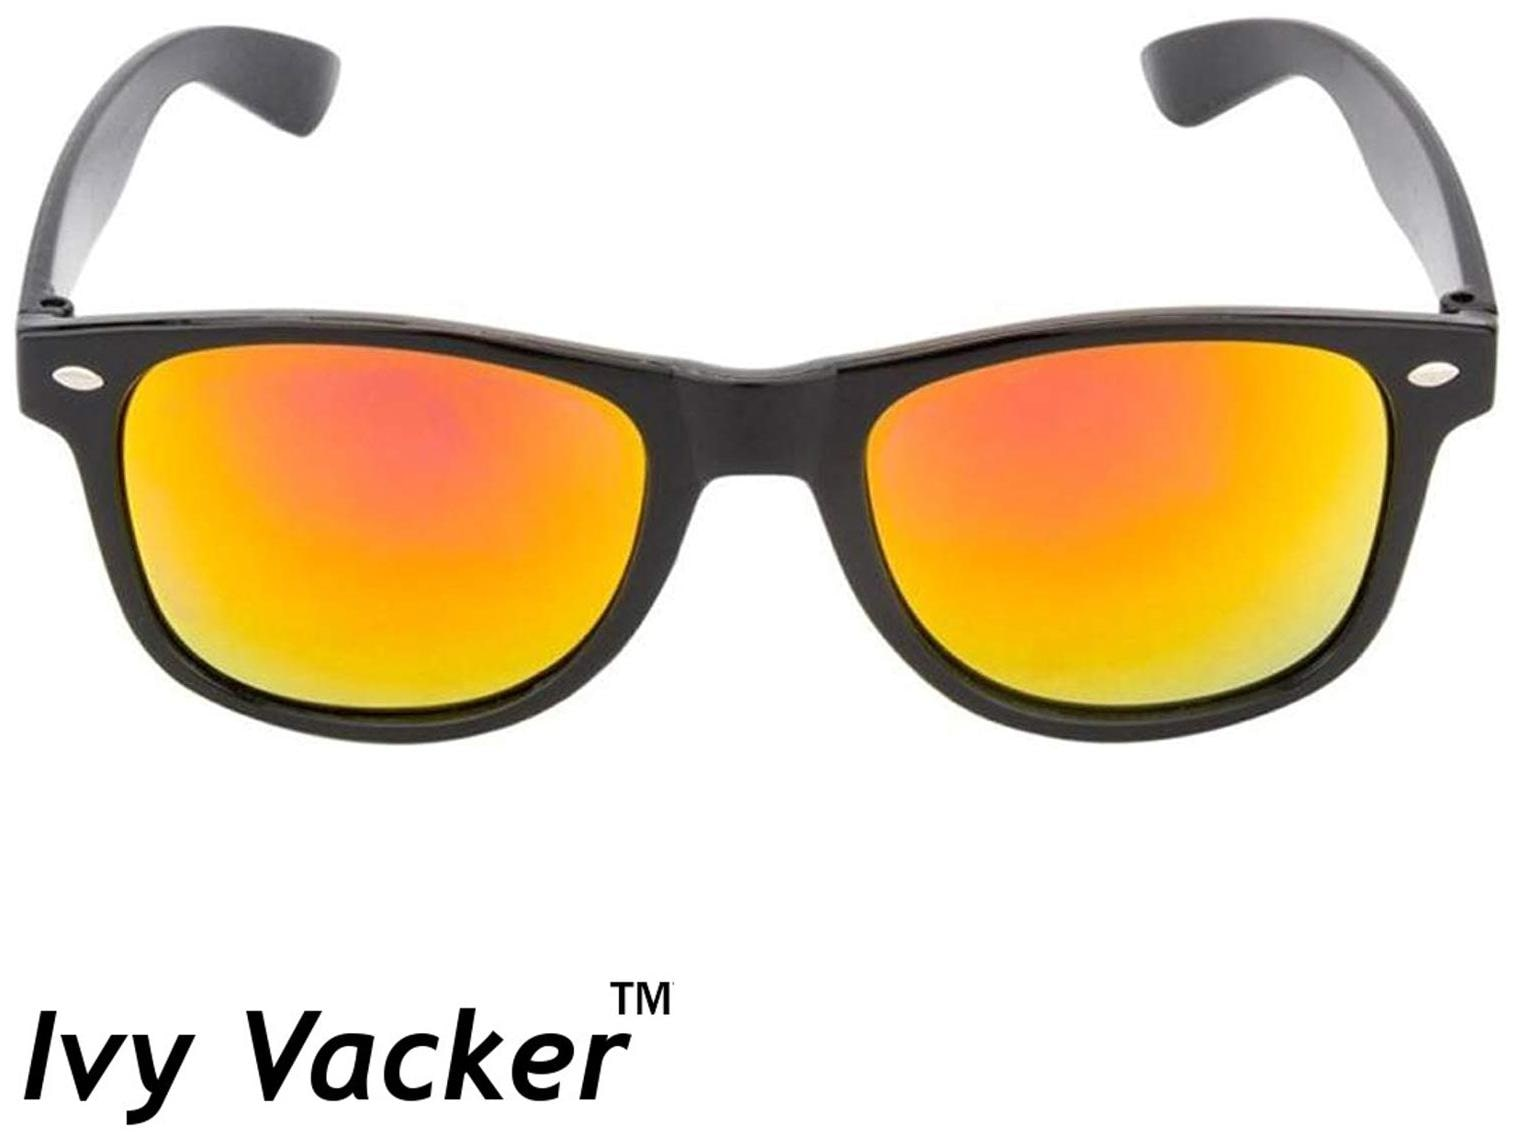 7a7a5ea88afd1 Buy Ivy Vacker Red Mirrored Wayfarer Sunglasses for Men Online at Low  Prices in India - Paytmmall.com